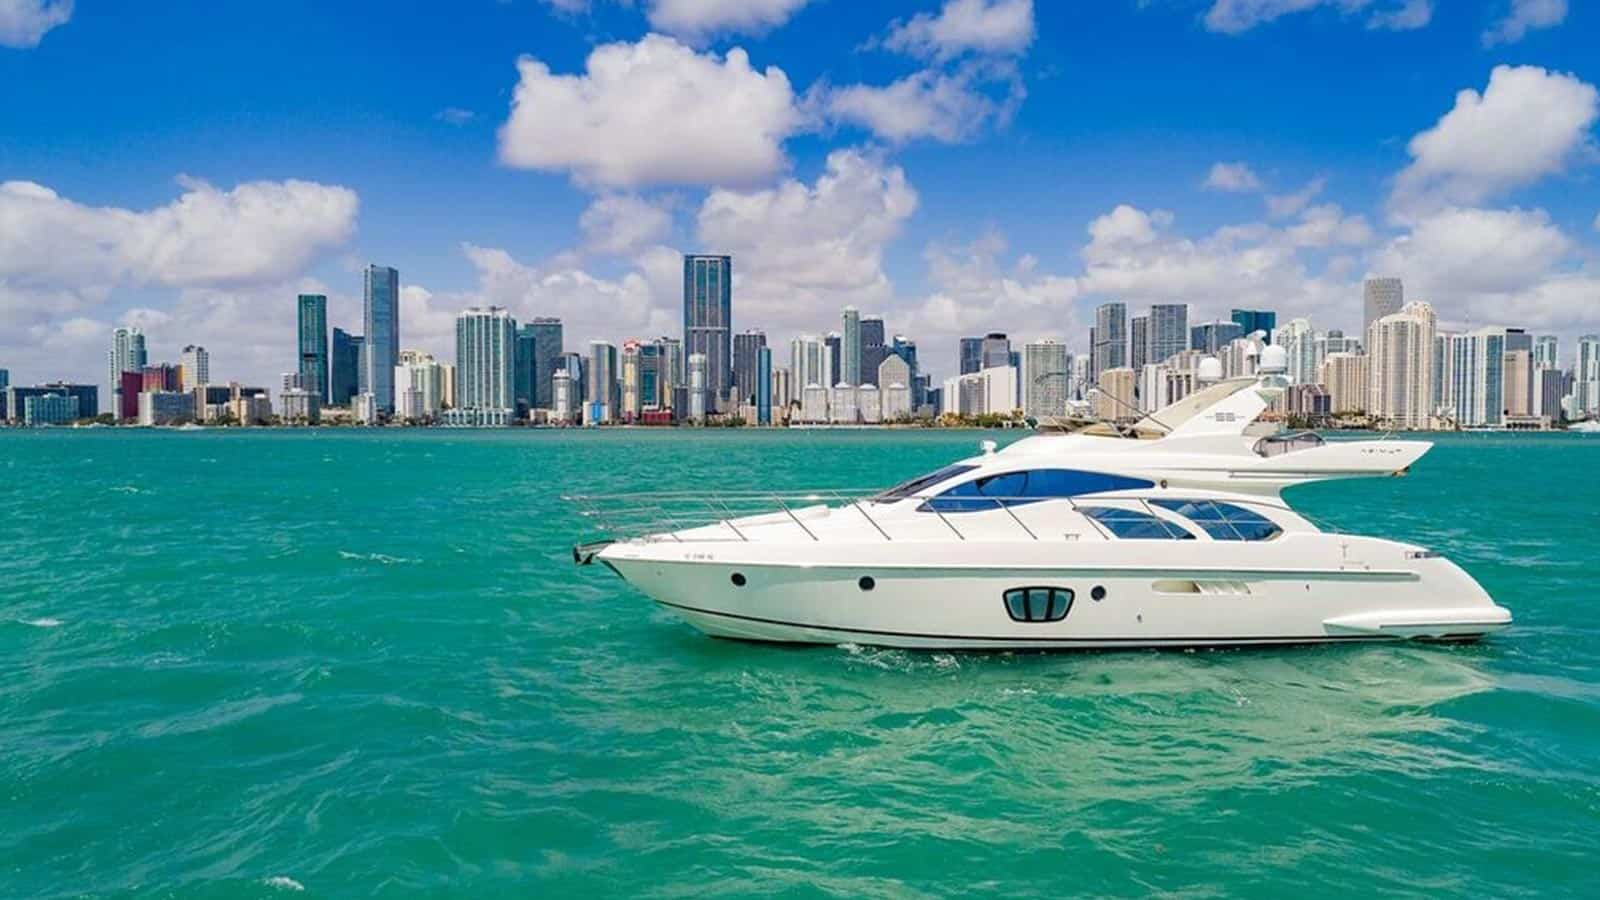 How Much To Rent A Yacht In Miami